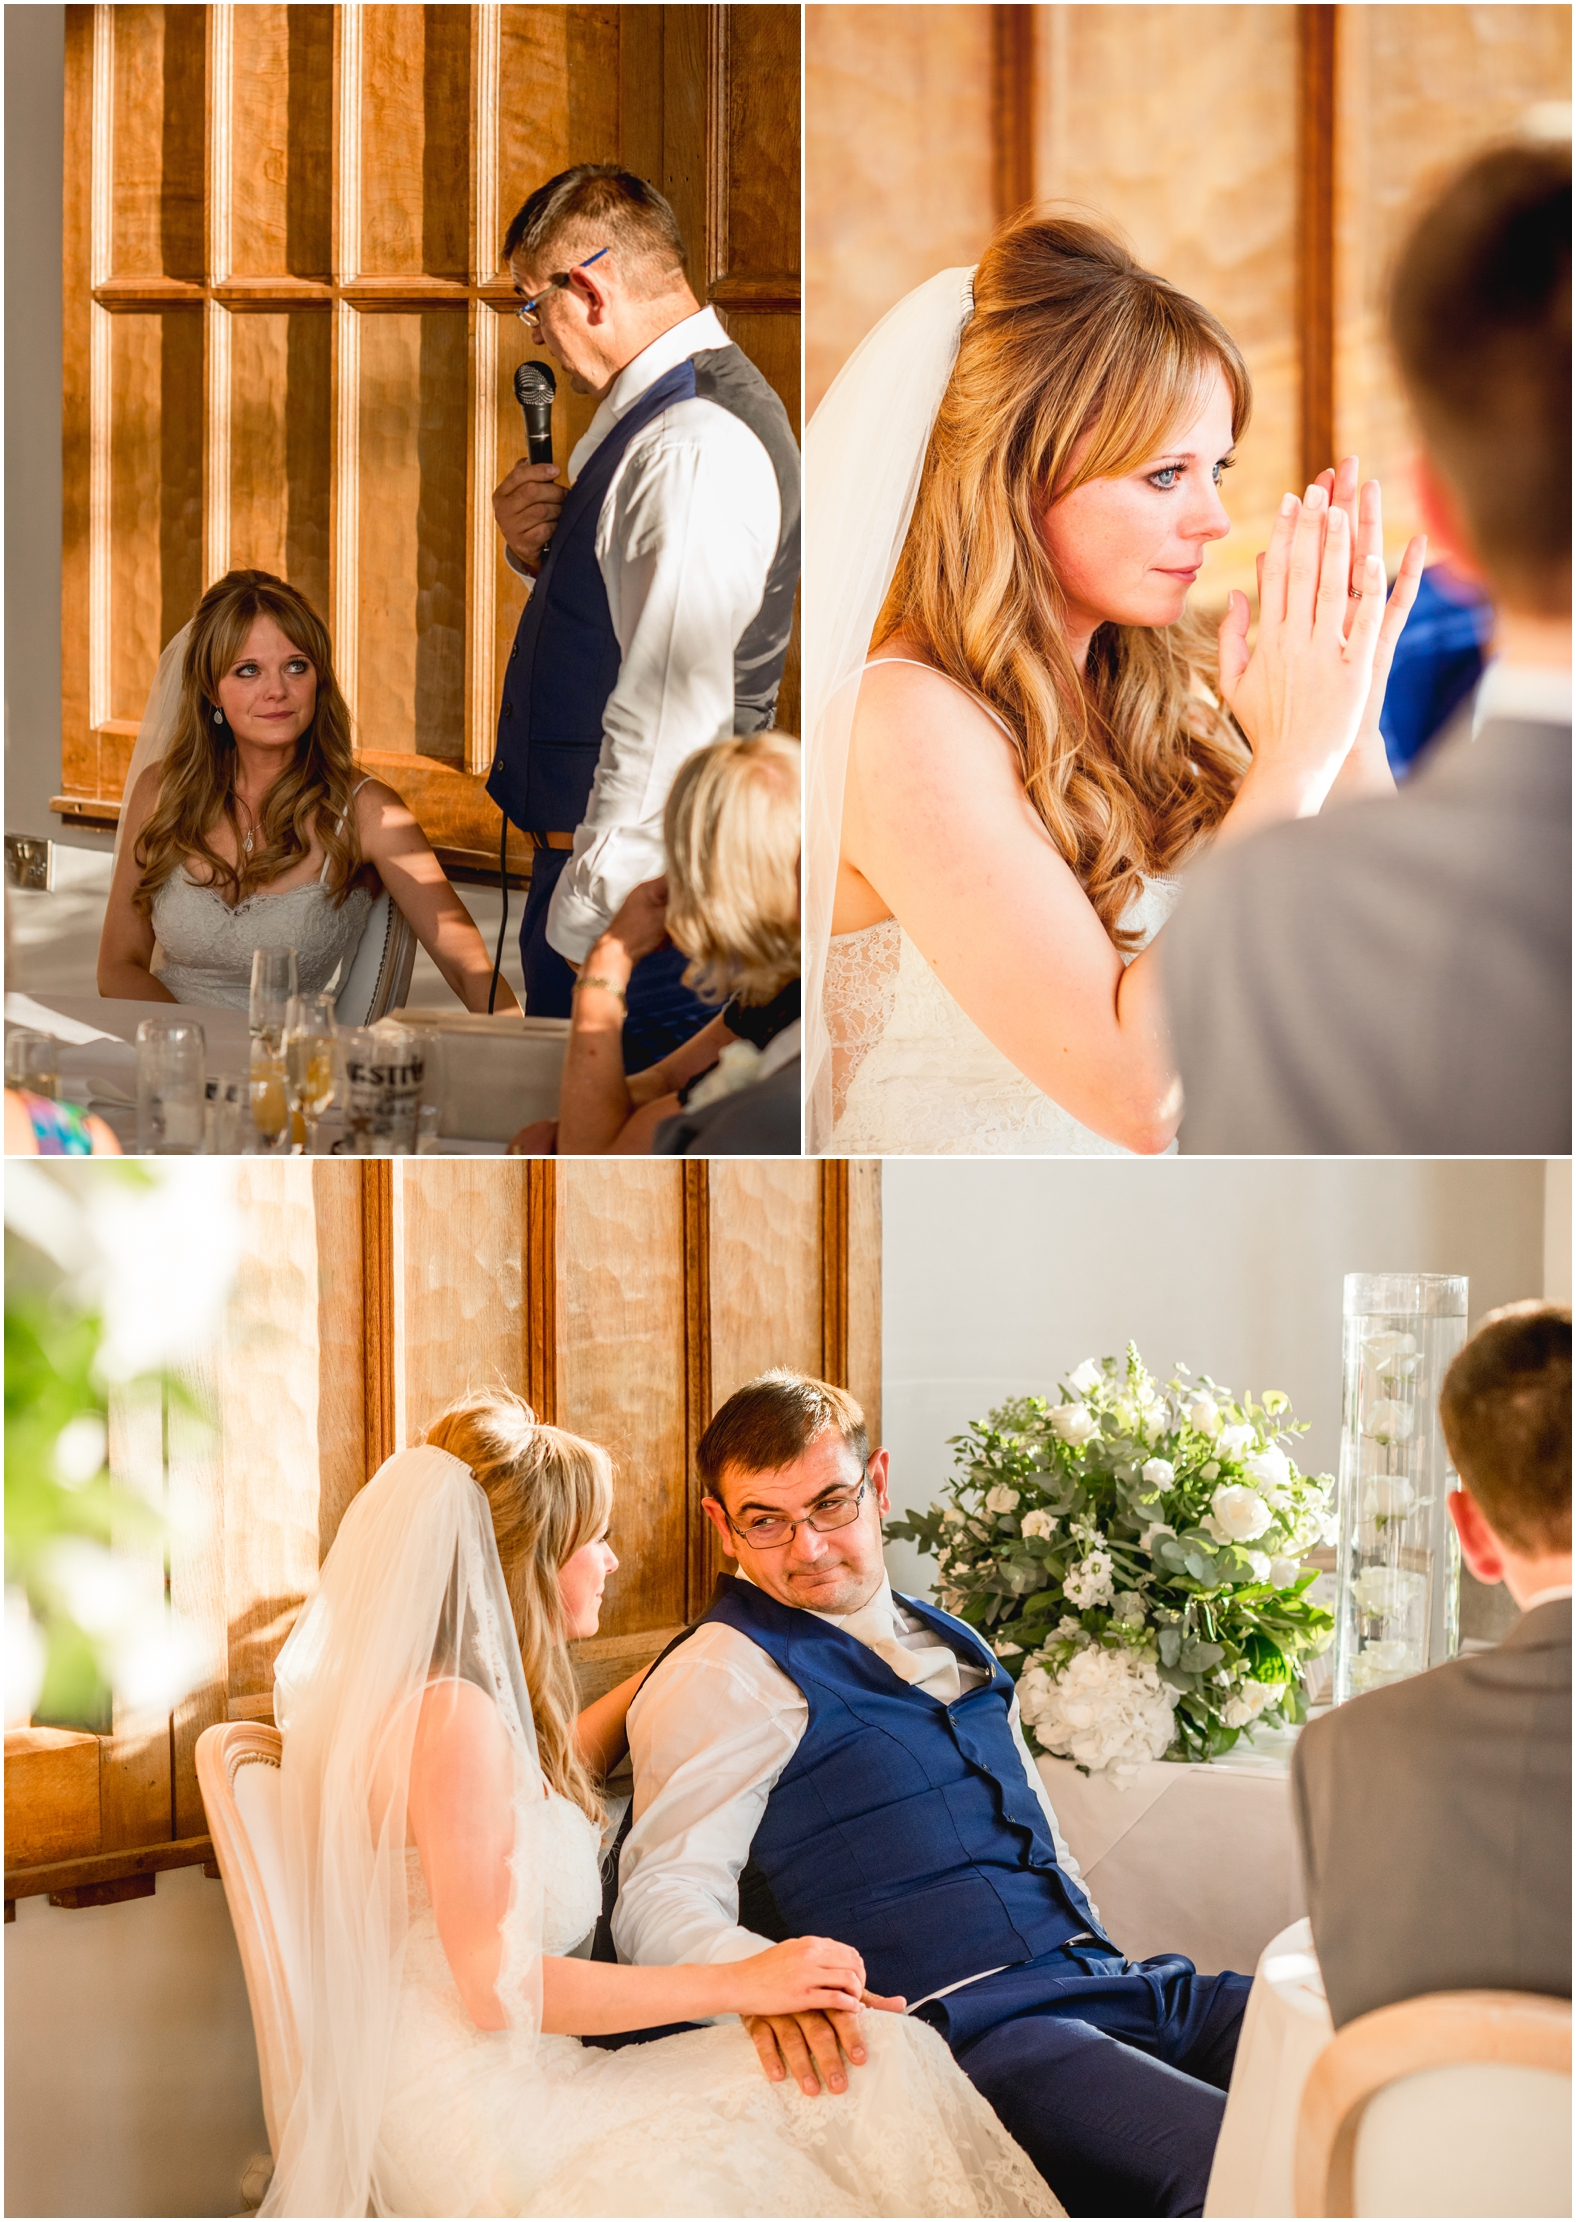 Stanbrook Abbey Wedding Photography by Lisa carpenter, West Midlands Wedding photographer based in Sutton Coldfield